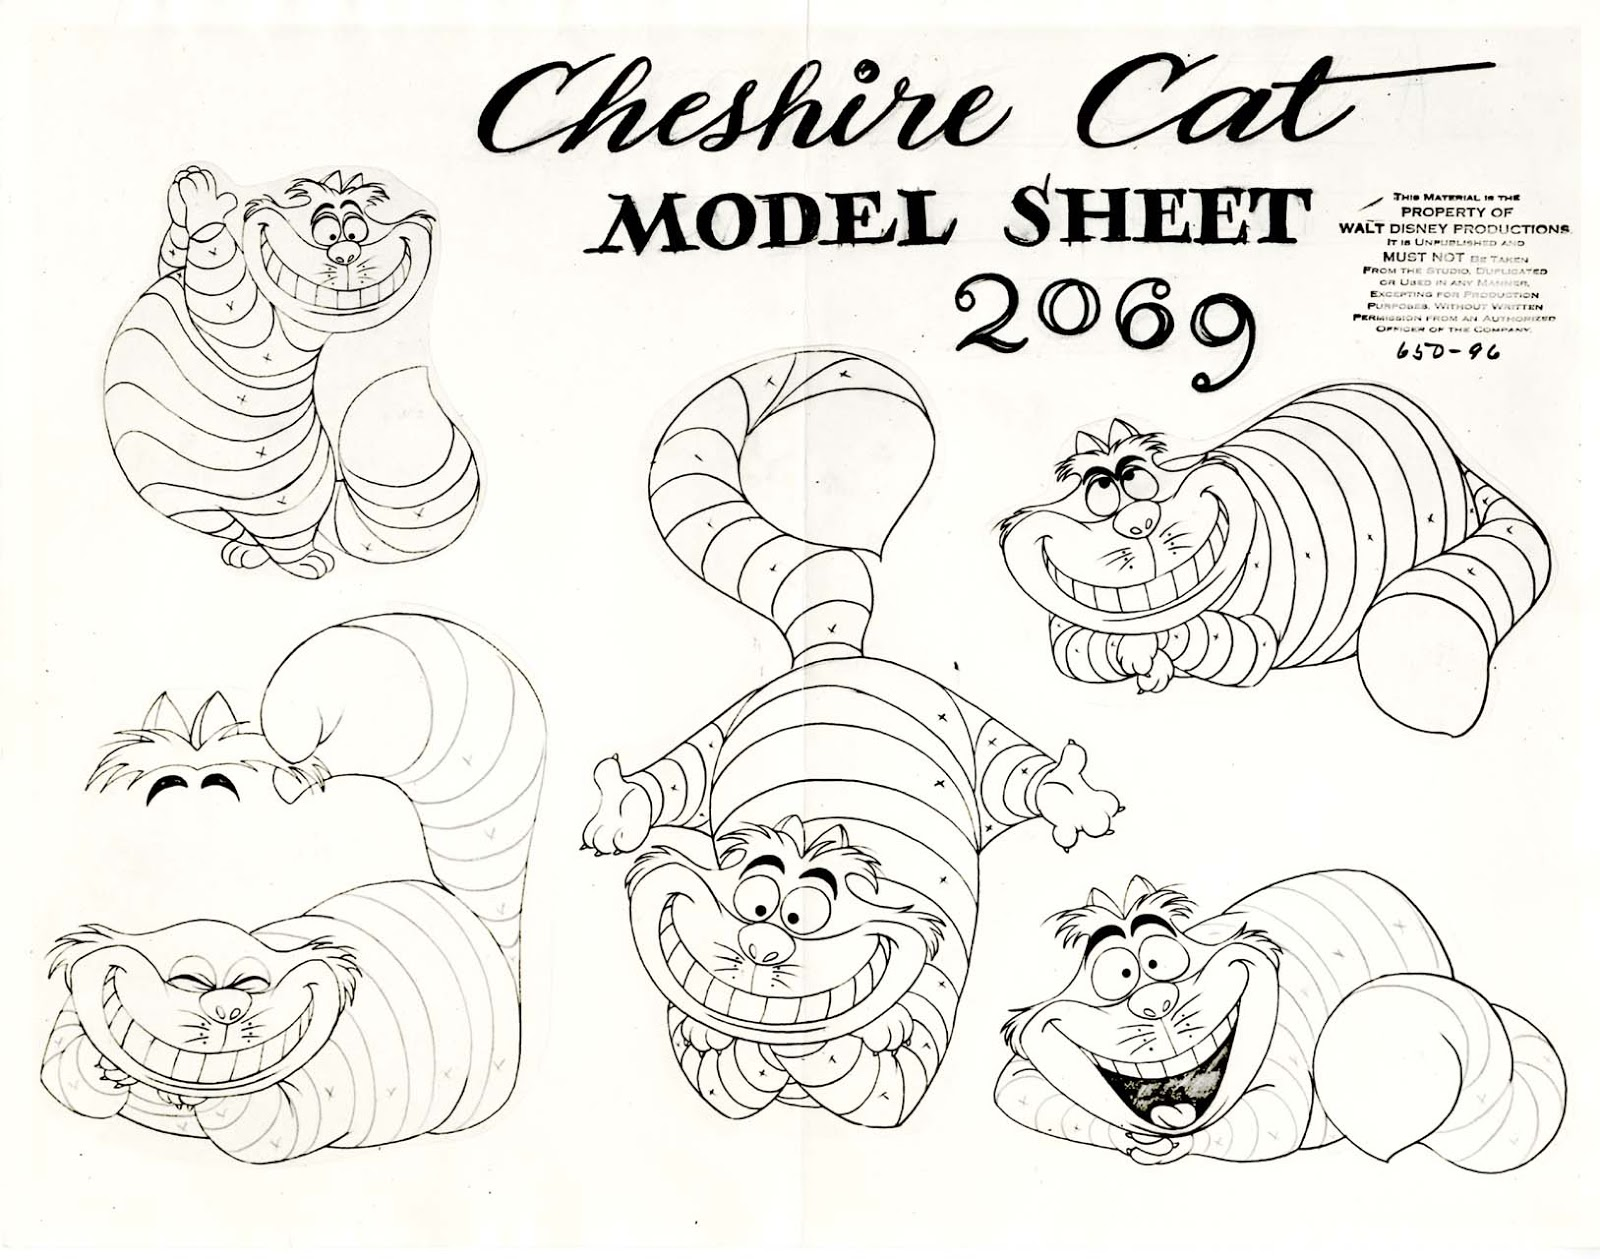 model sheet cheshire cat - Cheshire Cat Smile Coloring Pages